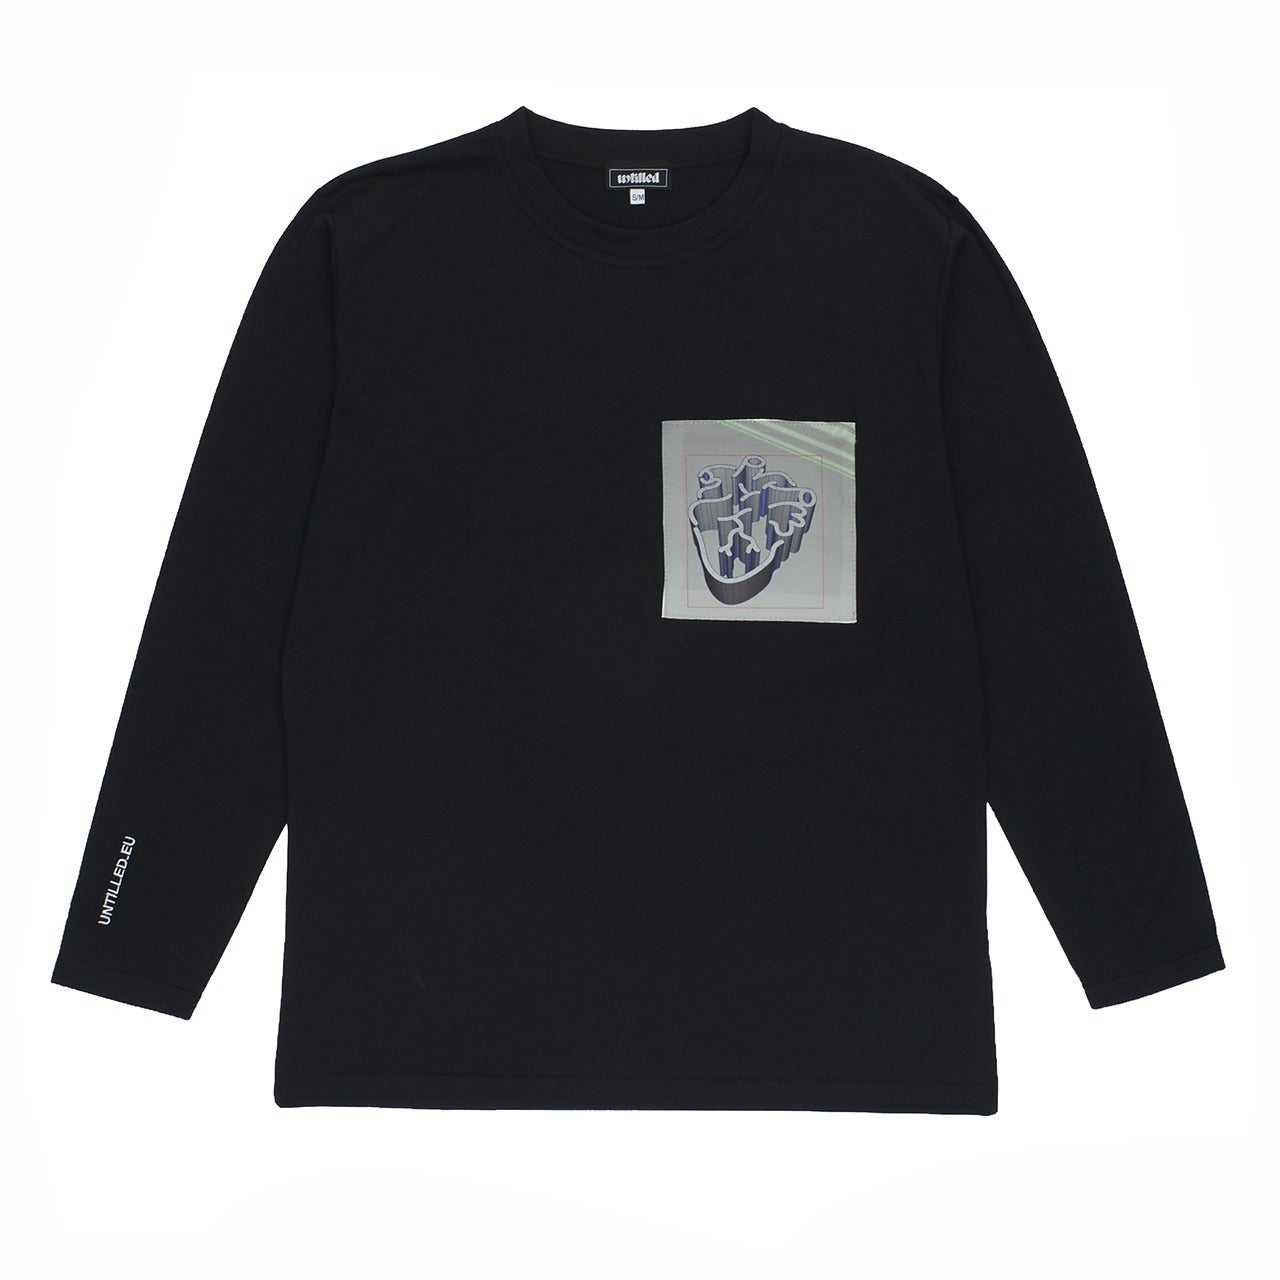 3D Patch Tee